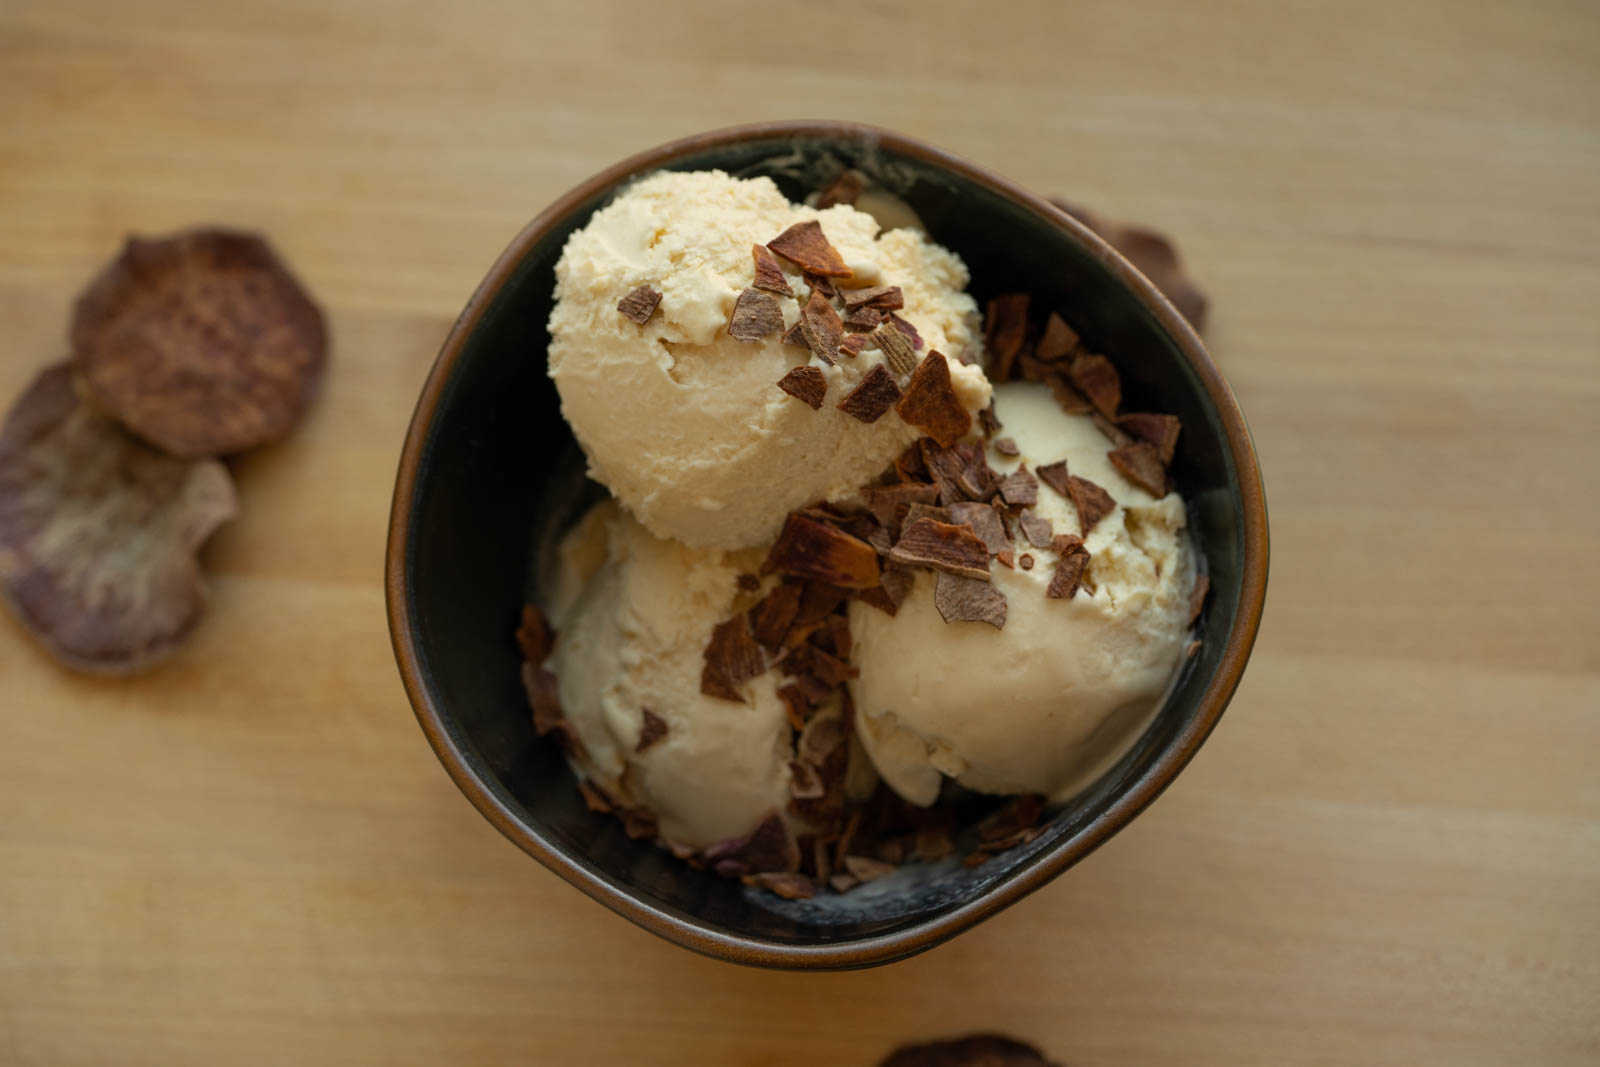 Carlienne's Cereal Milk Ice Cream